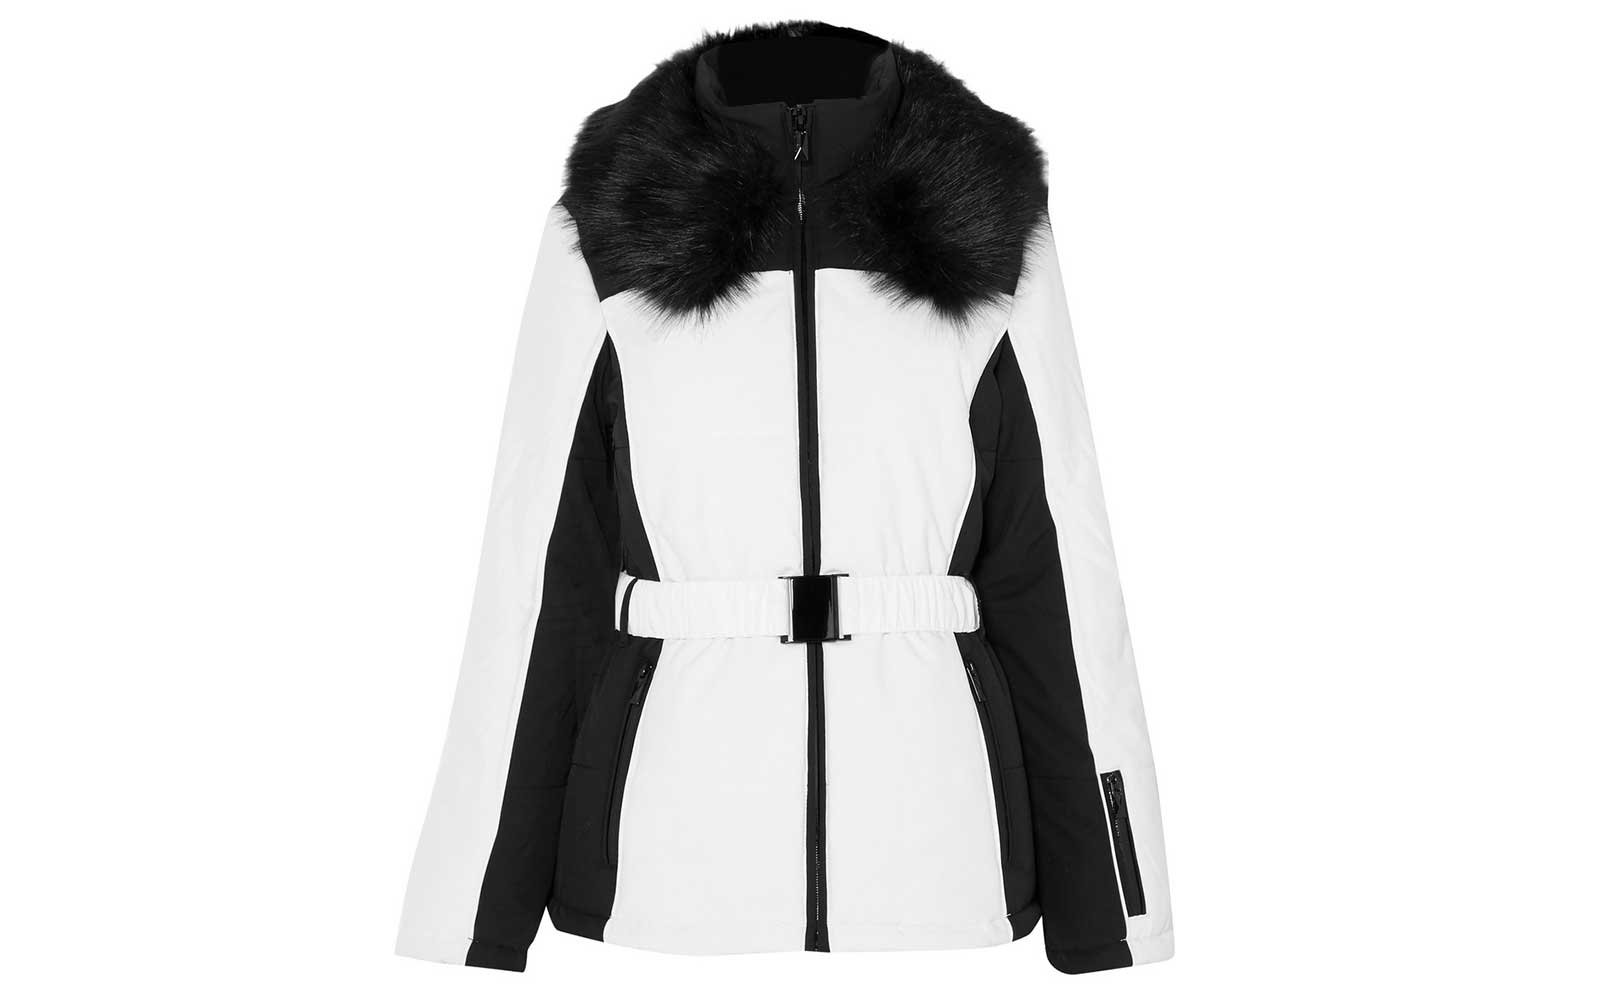 Black and white ski jacket by Topshop